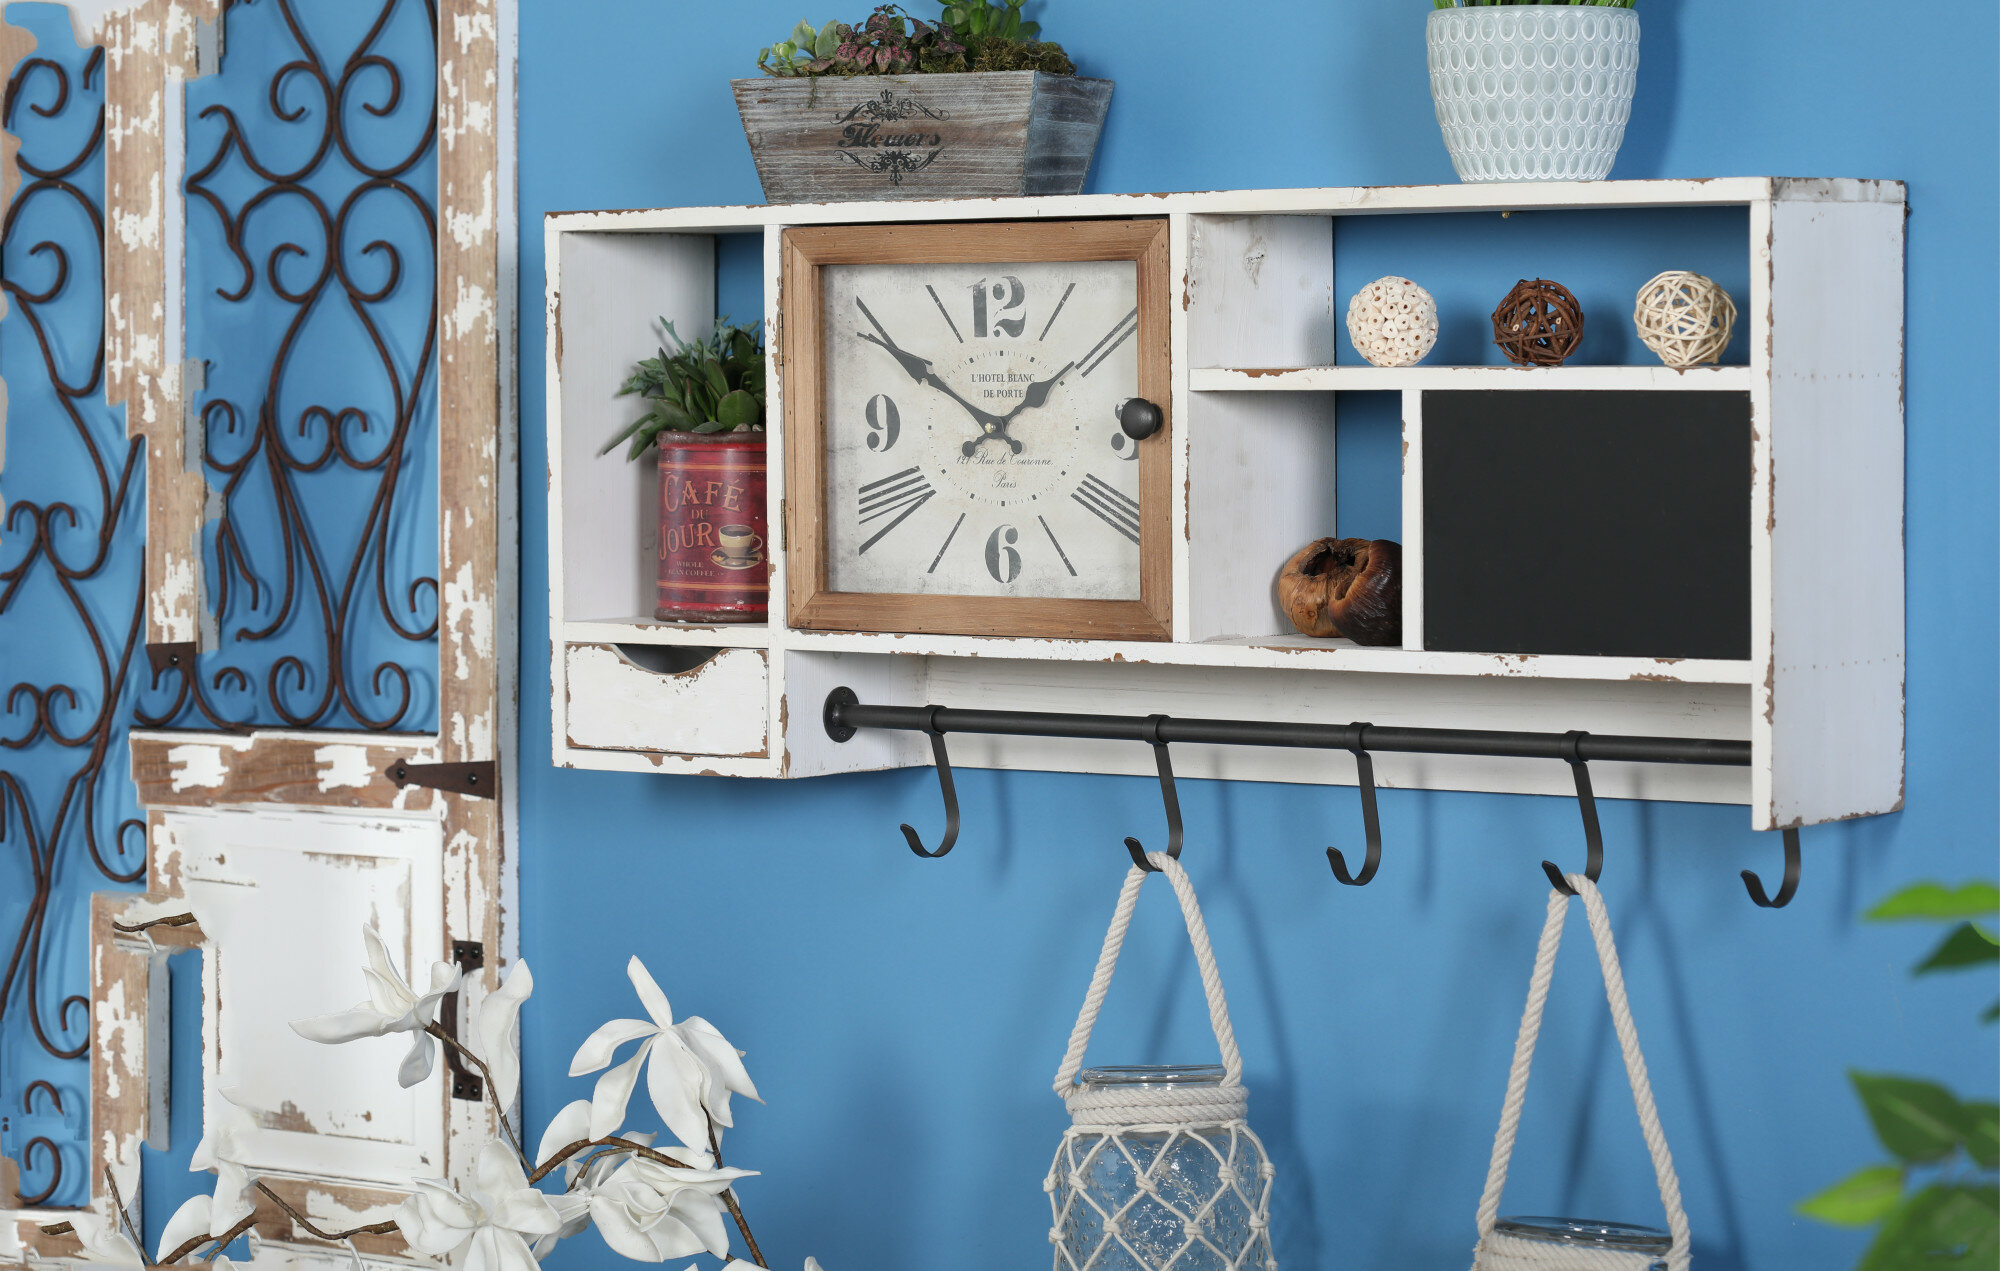 Giustino Rustic Wall Clock With Multi-purpose Shelves And Hooks